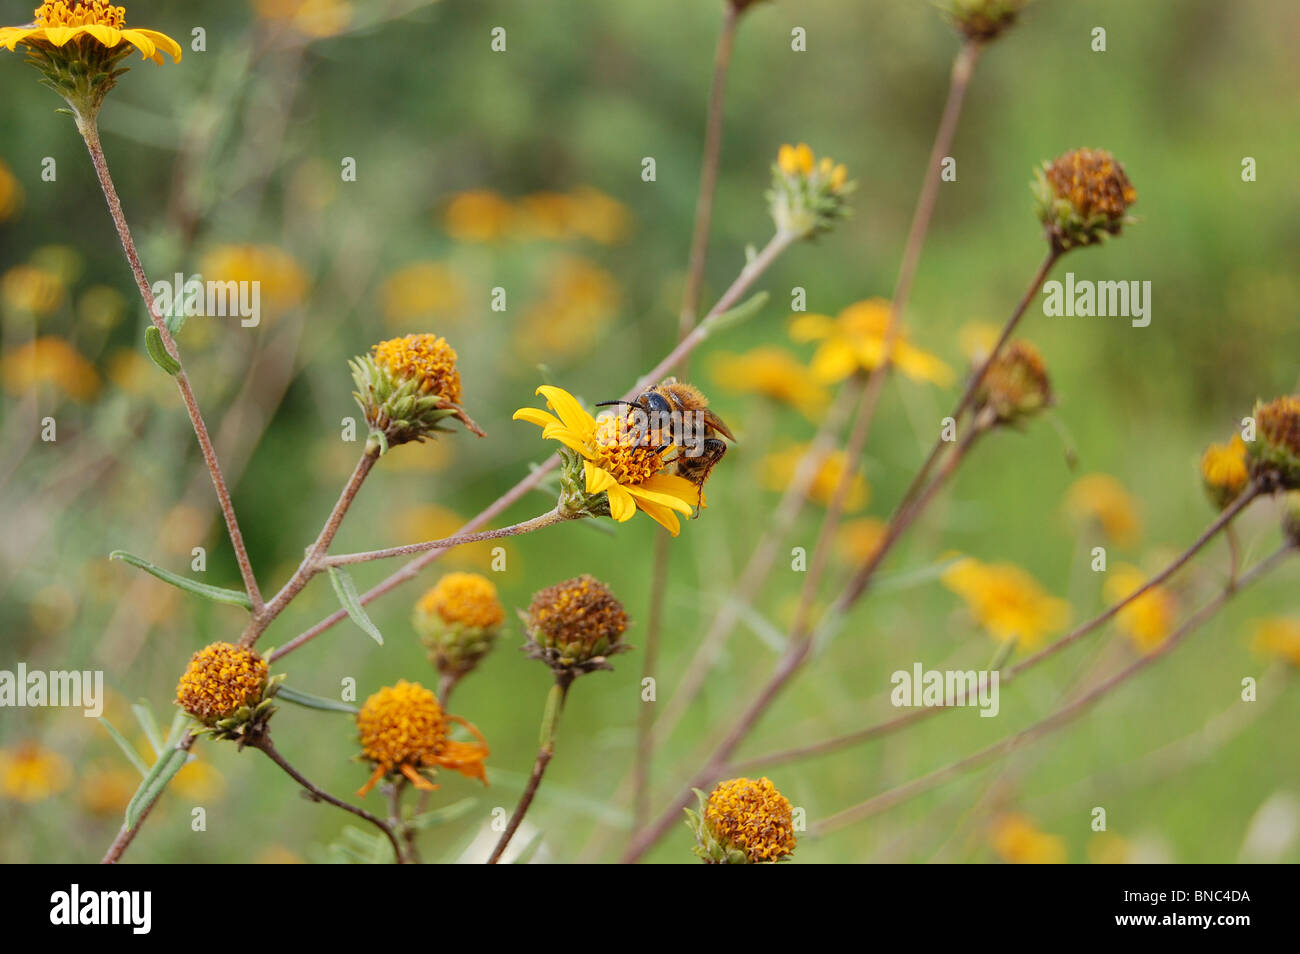 Wasp feeding on nectar in a park in Mexico - Stock Image